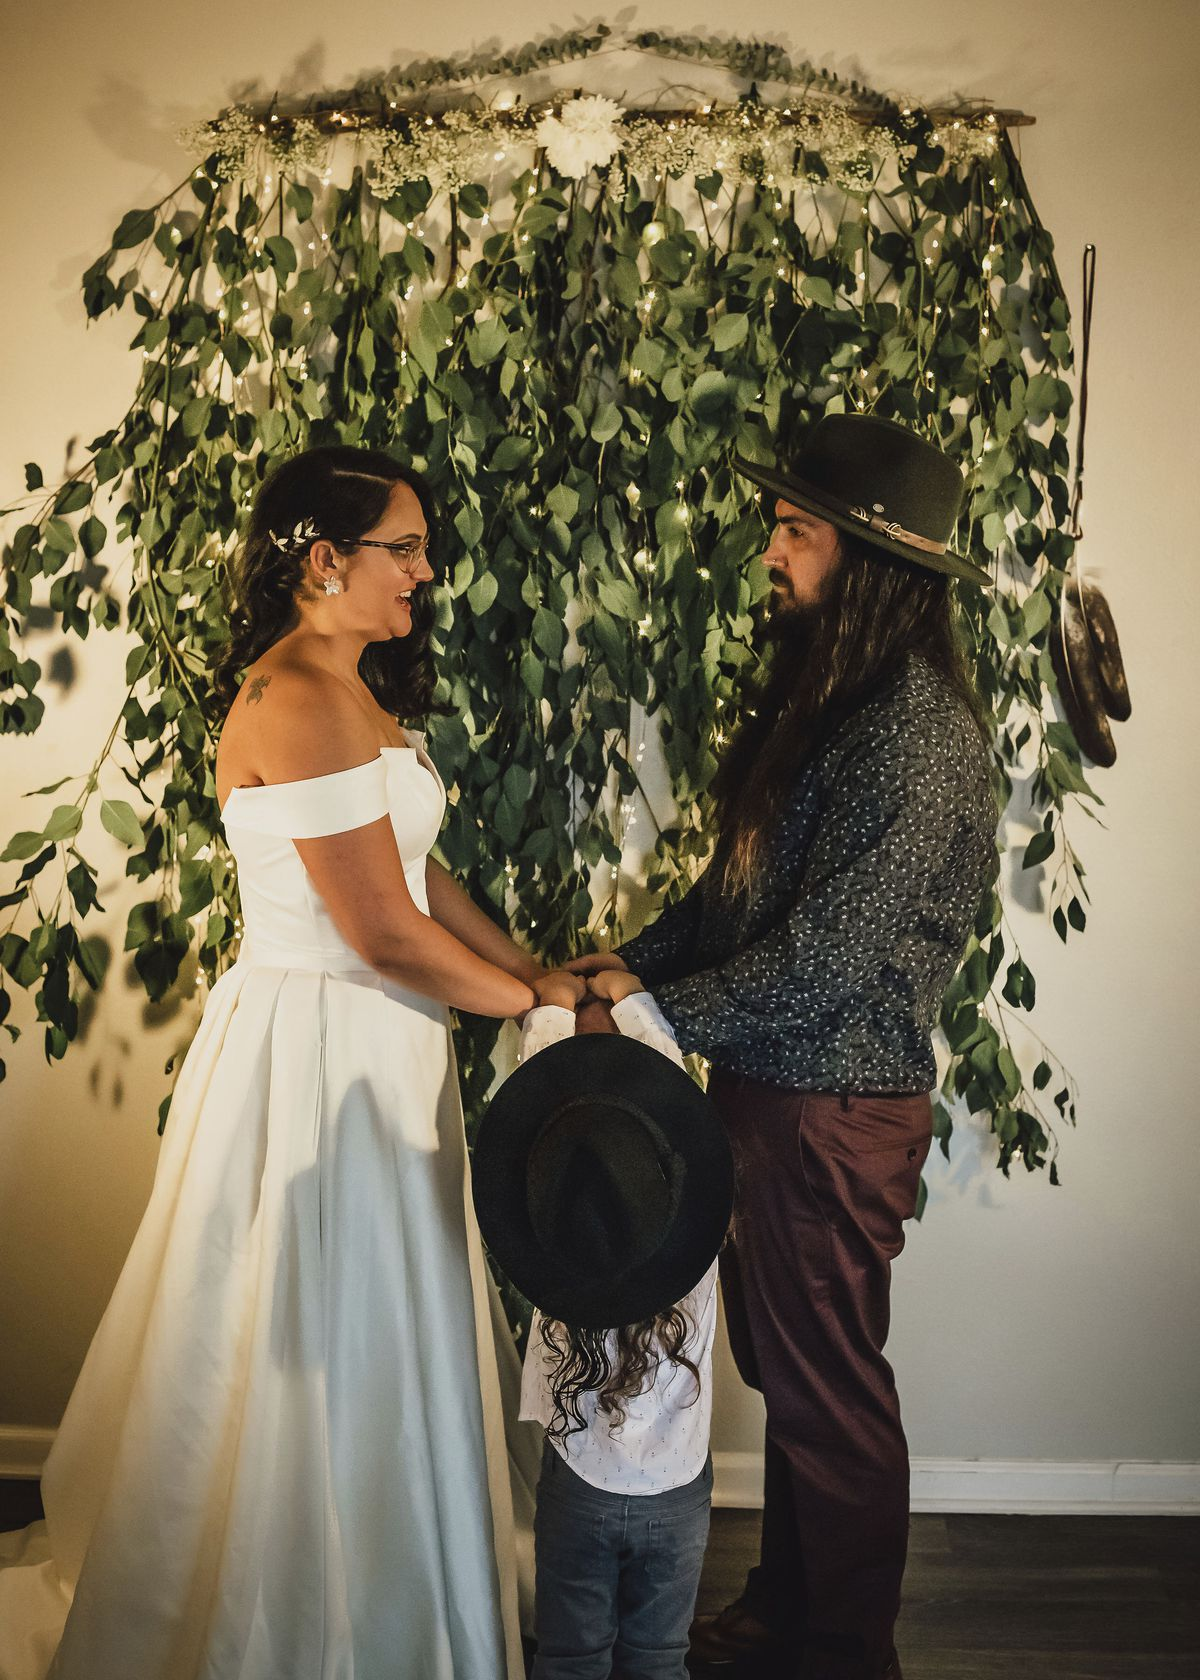 """In this Dec. 2020, photo provided by Kristen Pritchard Photography, Kayleigh and Cody Cousins hold hands during their wedding ceremony, accompanied by their son, River, at home in San Diego, Calif. They initially planned an April 2020 wedding, postponed it after the pandemic took hold, rescheduled it for December, then had to shift gears again when a new lockdown was imposed. """"That was devastating,"""" said Kayleigh. """"We said, 'Let's just do it on Zoom.'"""""""